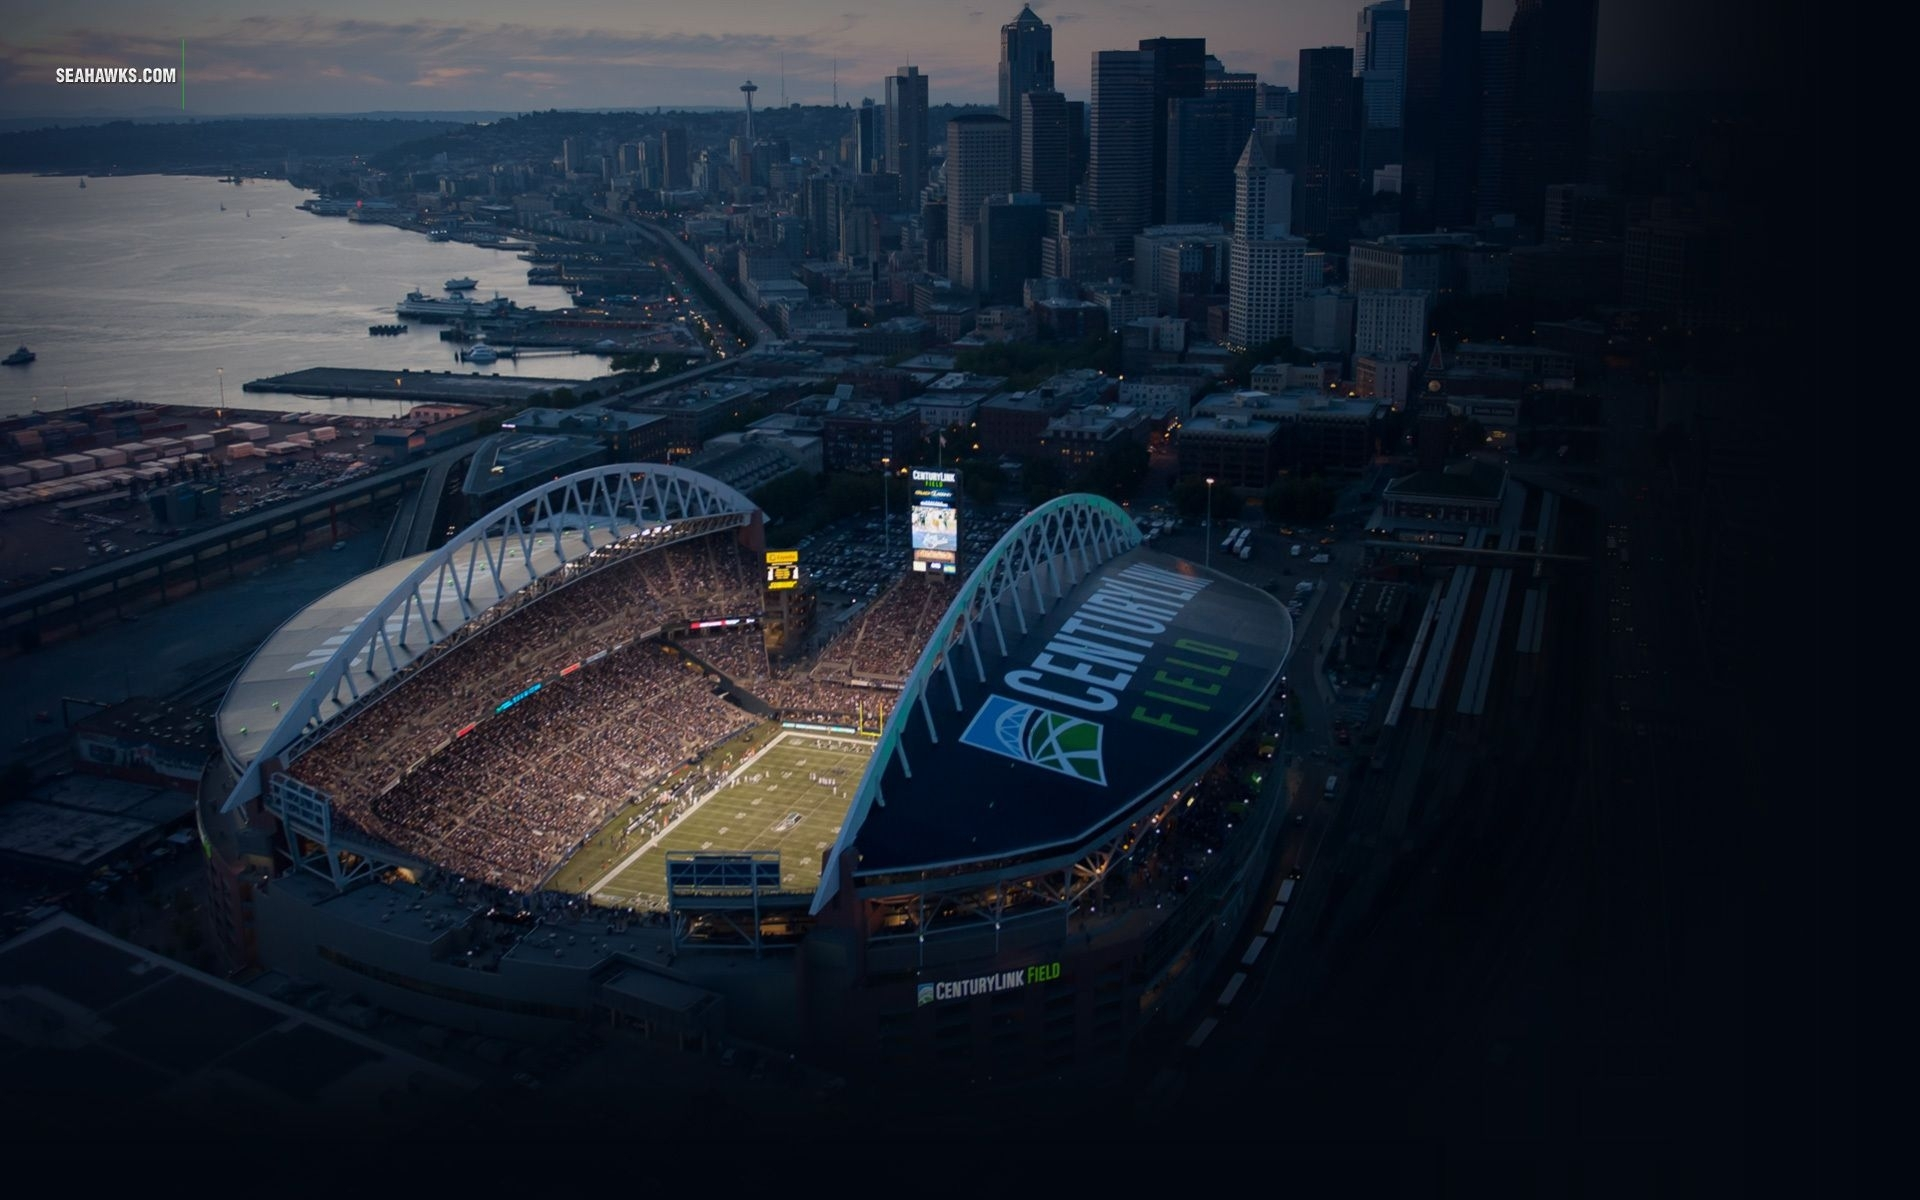 seattle seahawks stadium hd wallpaper 55975 1920x1200 px